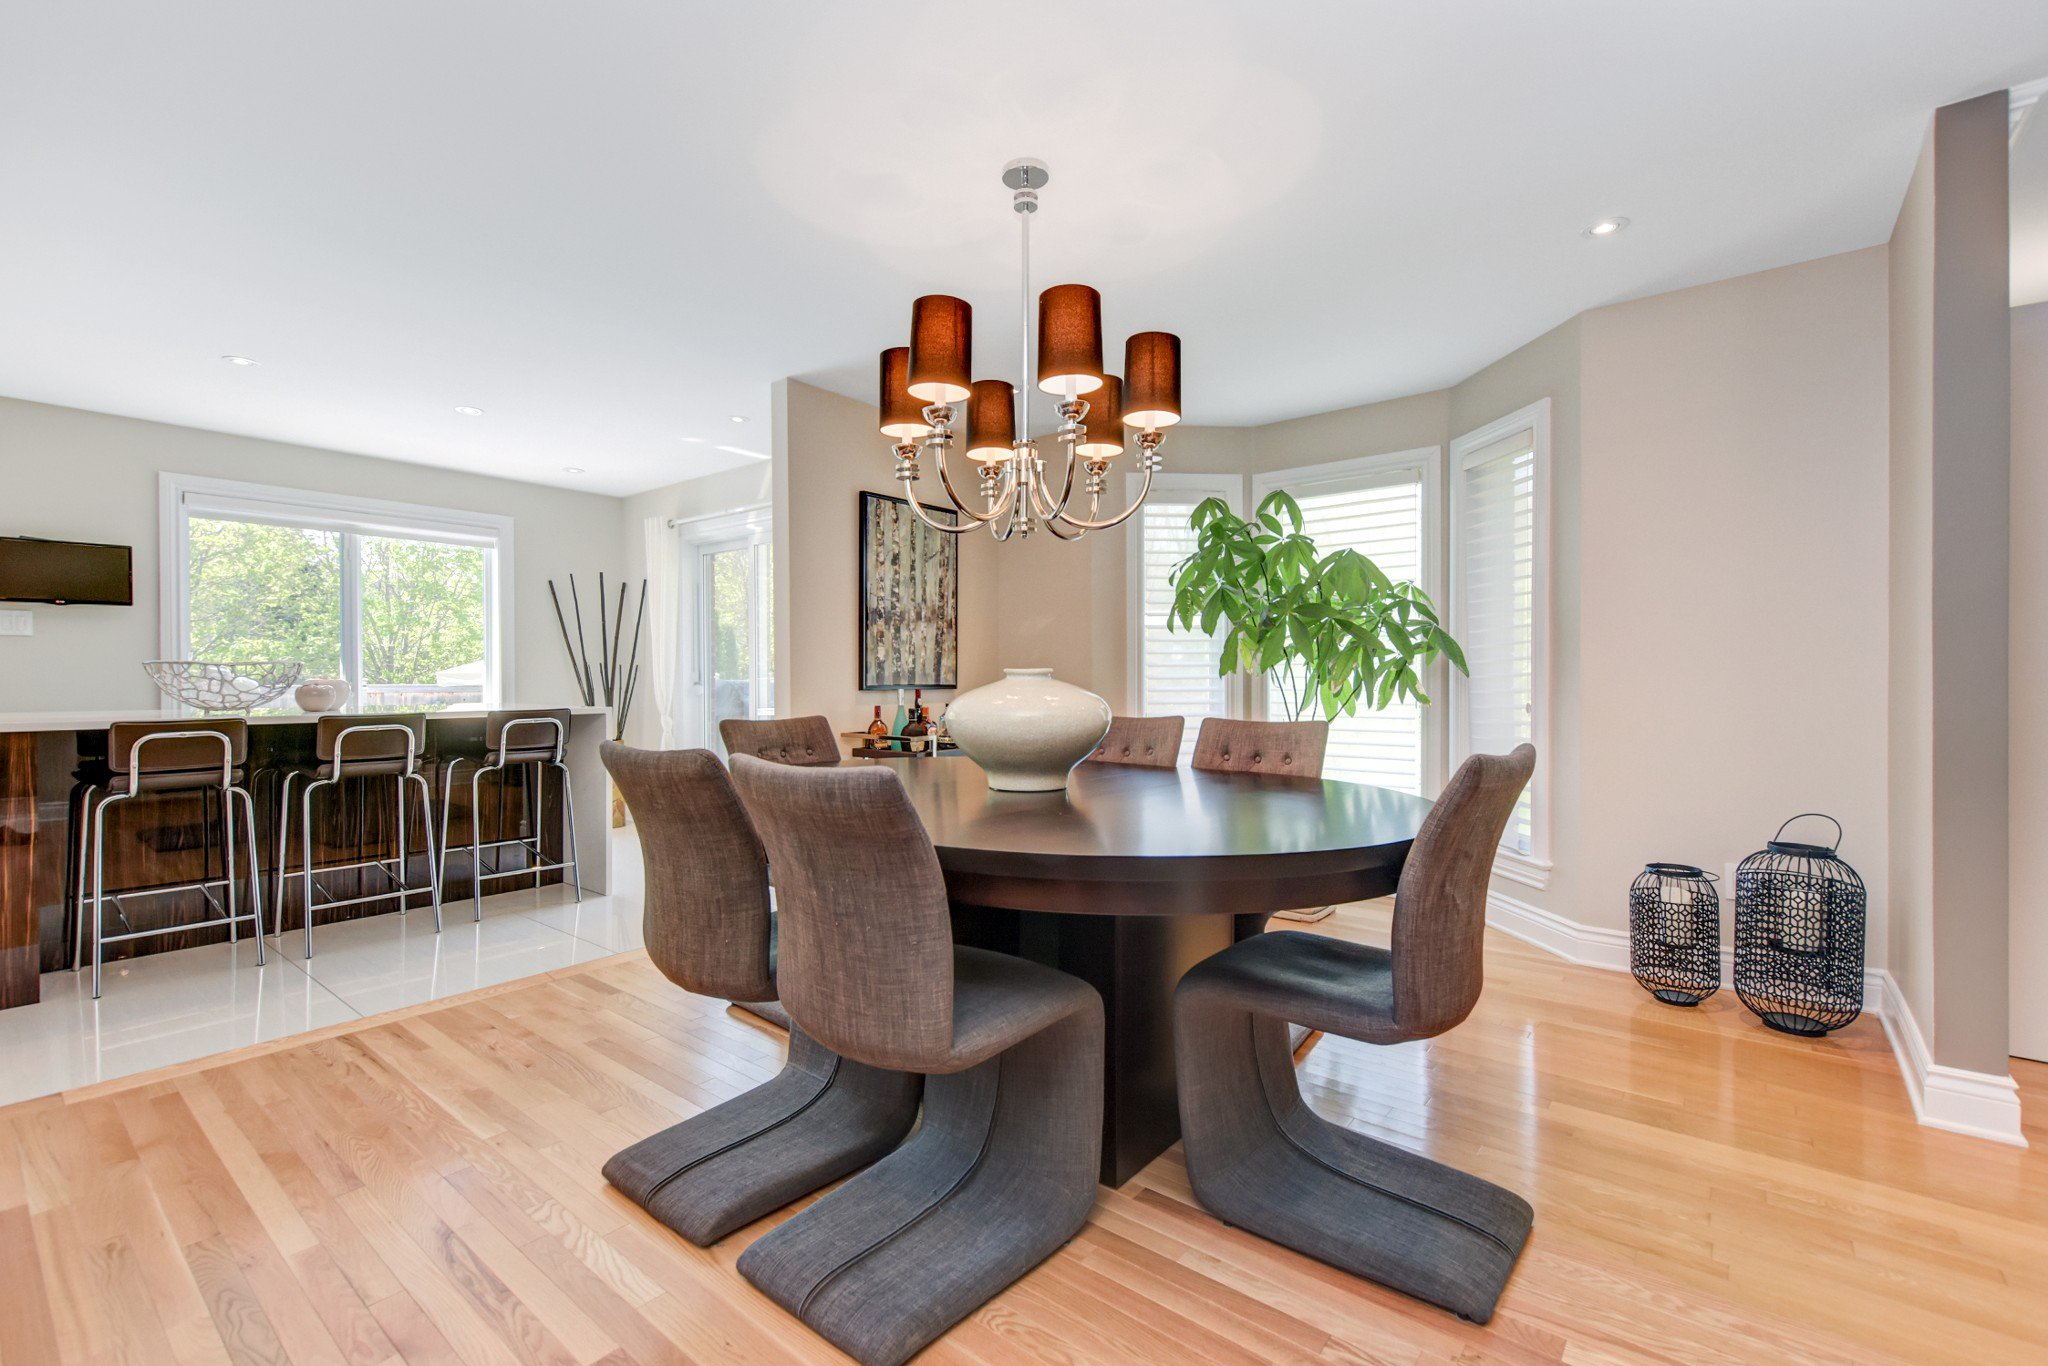 Photo 19: Photos: 1490 REINDEER WAY.: Greely House for sale (Ottawa)  : MLS®# 1109530